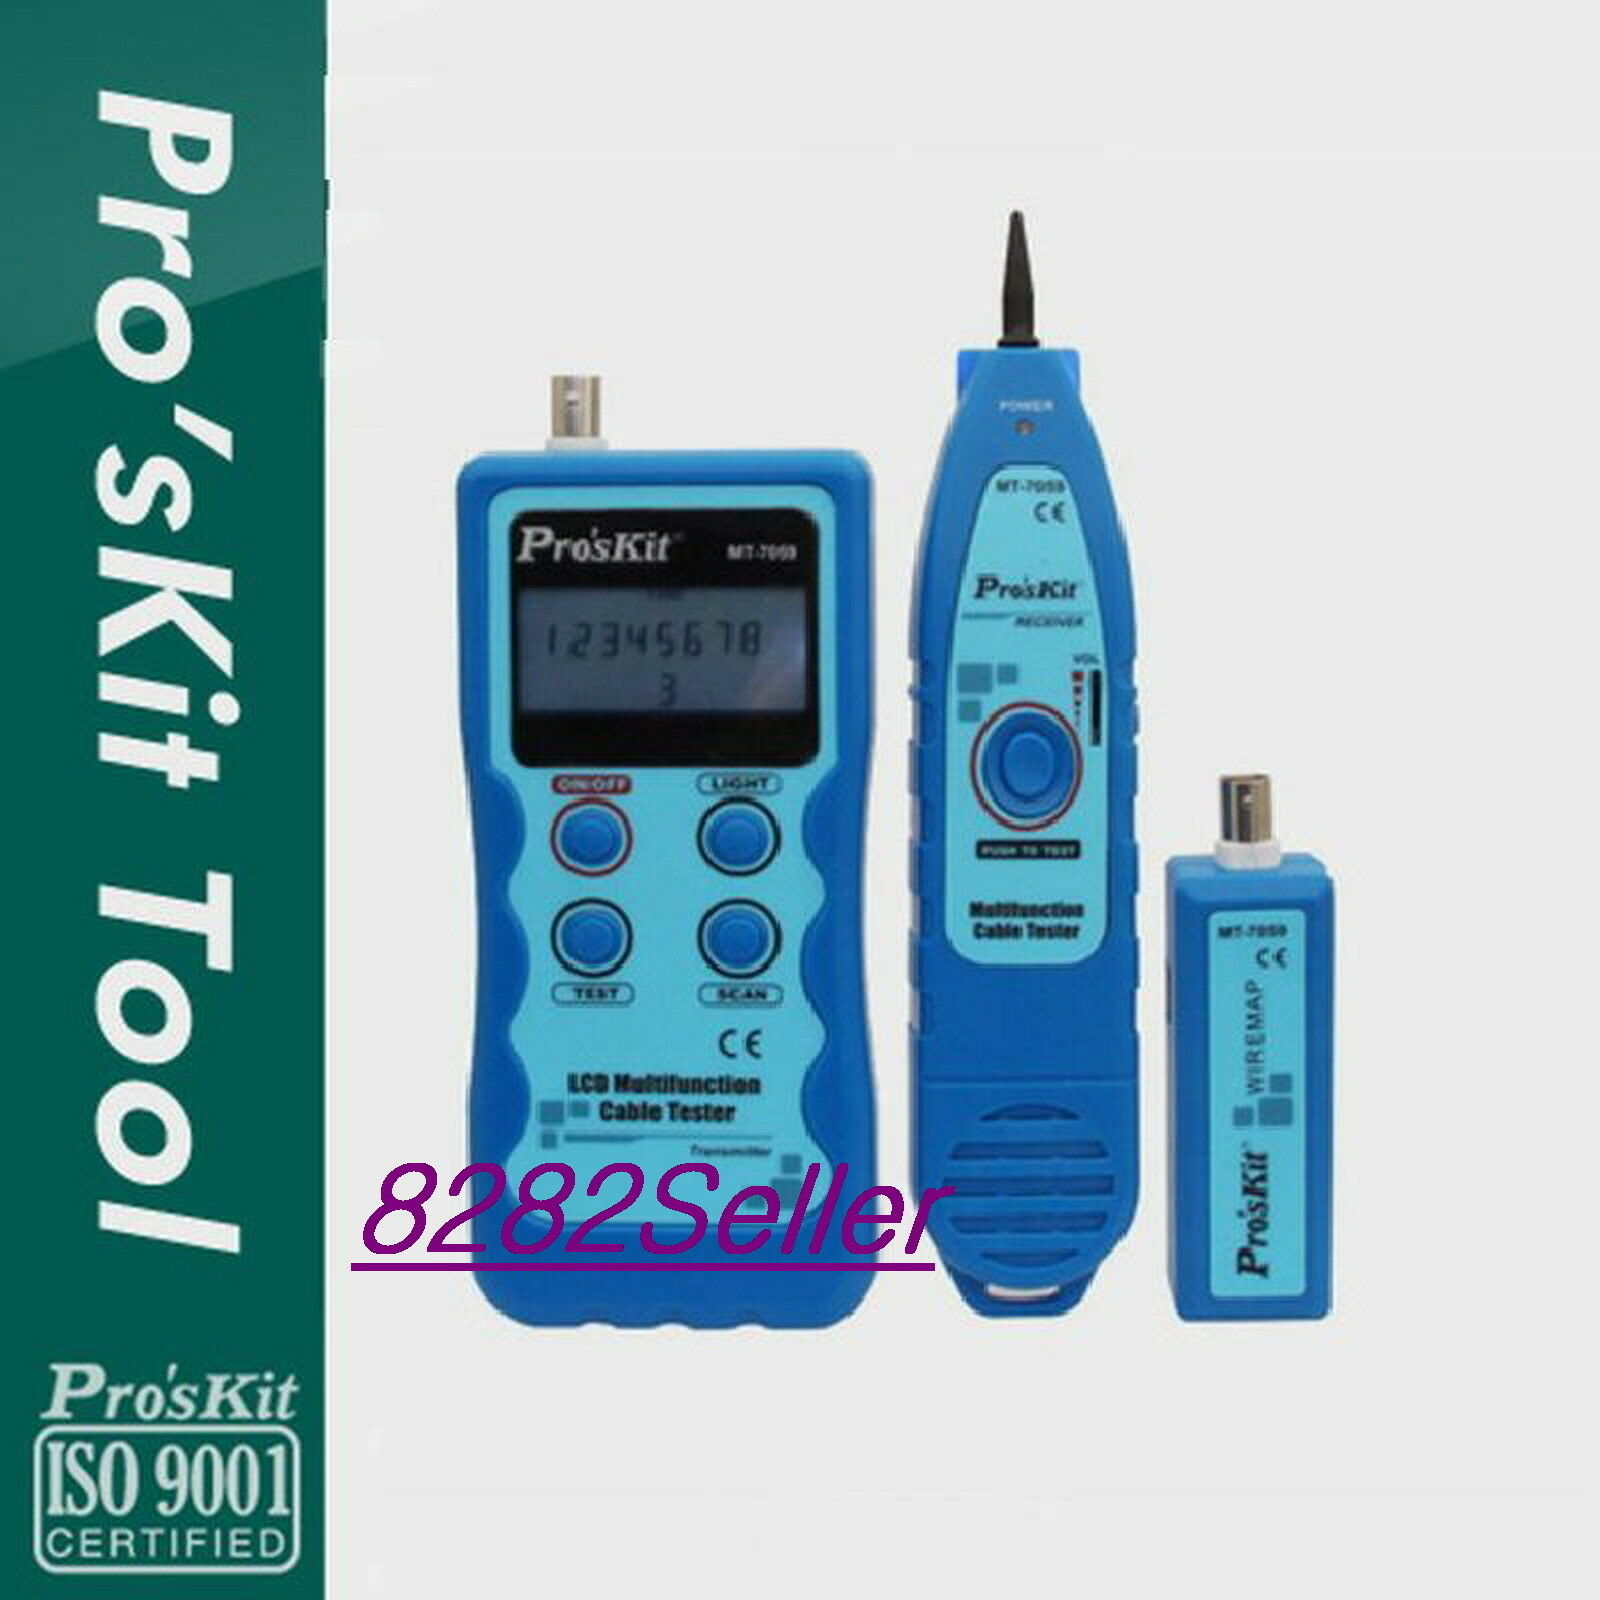 ProsKit (MT-7059) LCD display Multifunction Cable Tester Wire tracing LAN cable